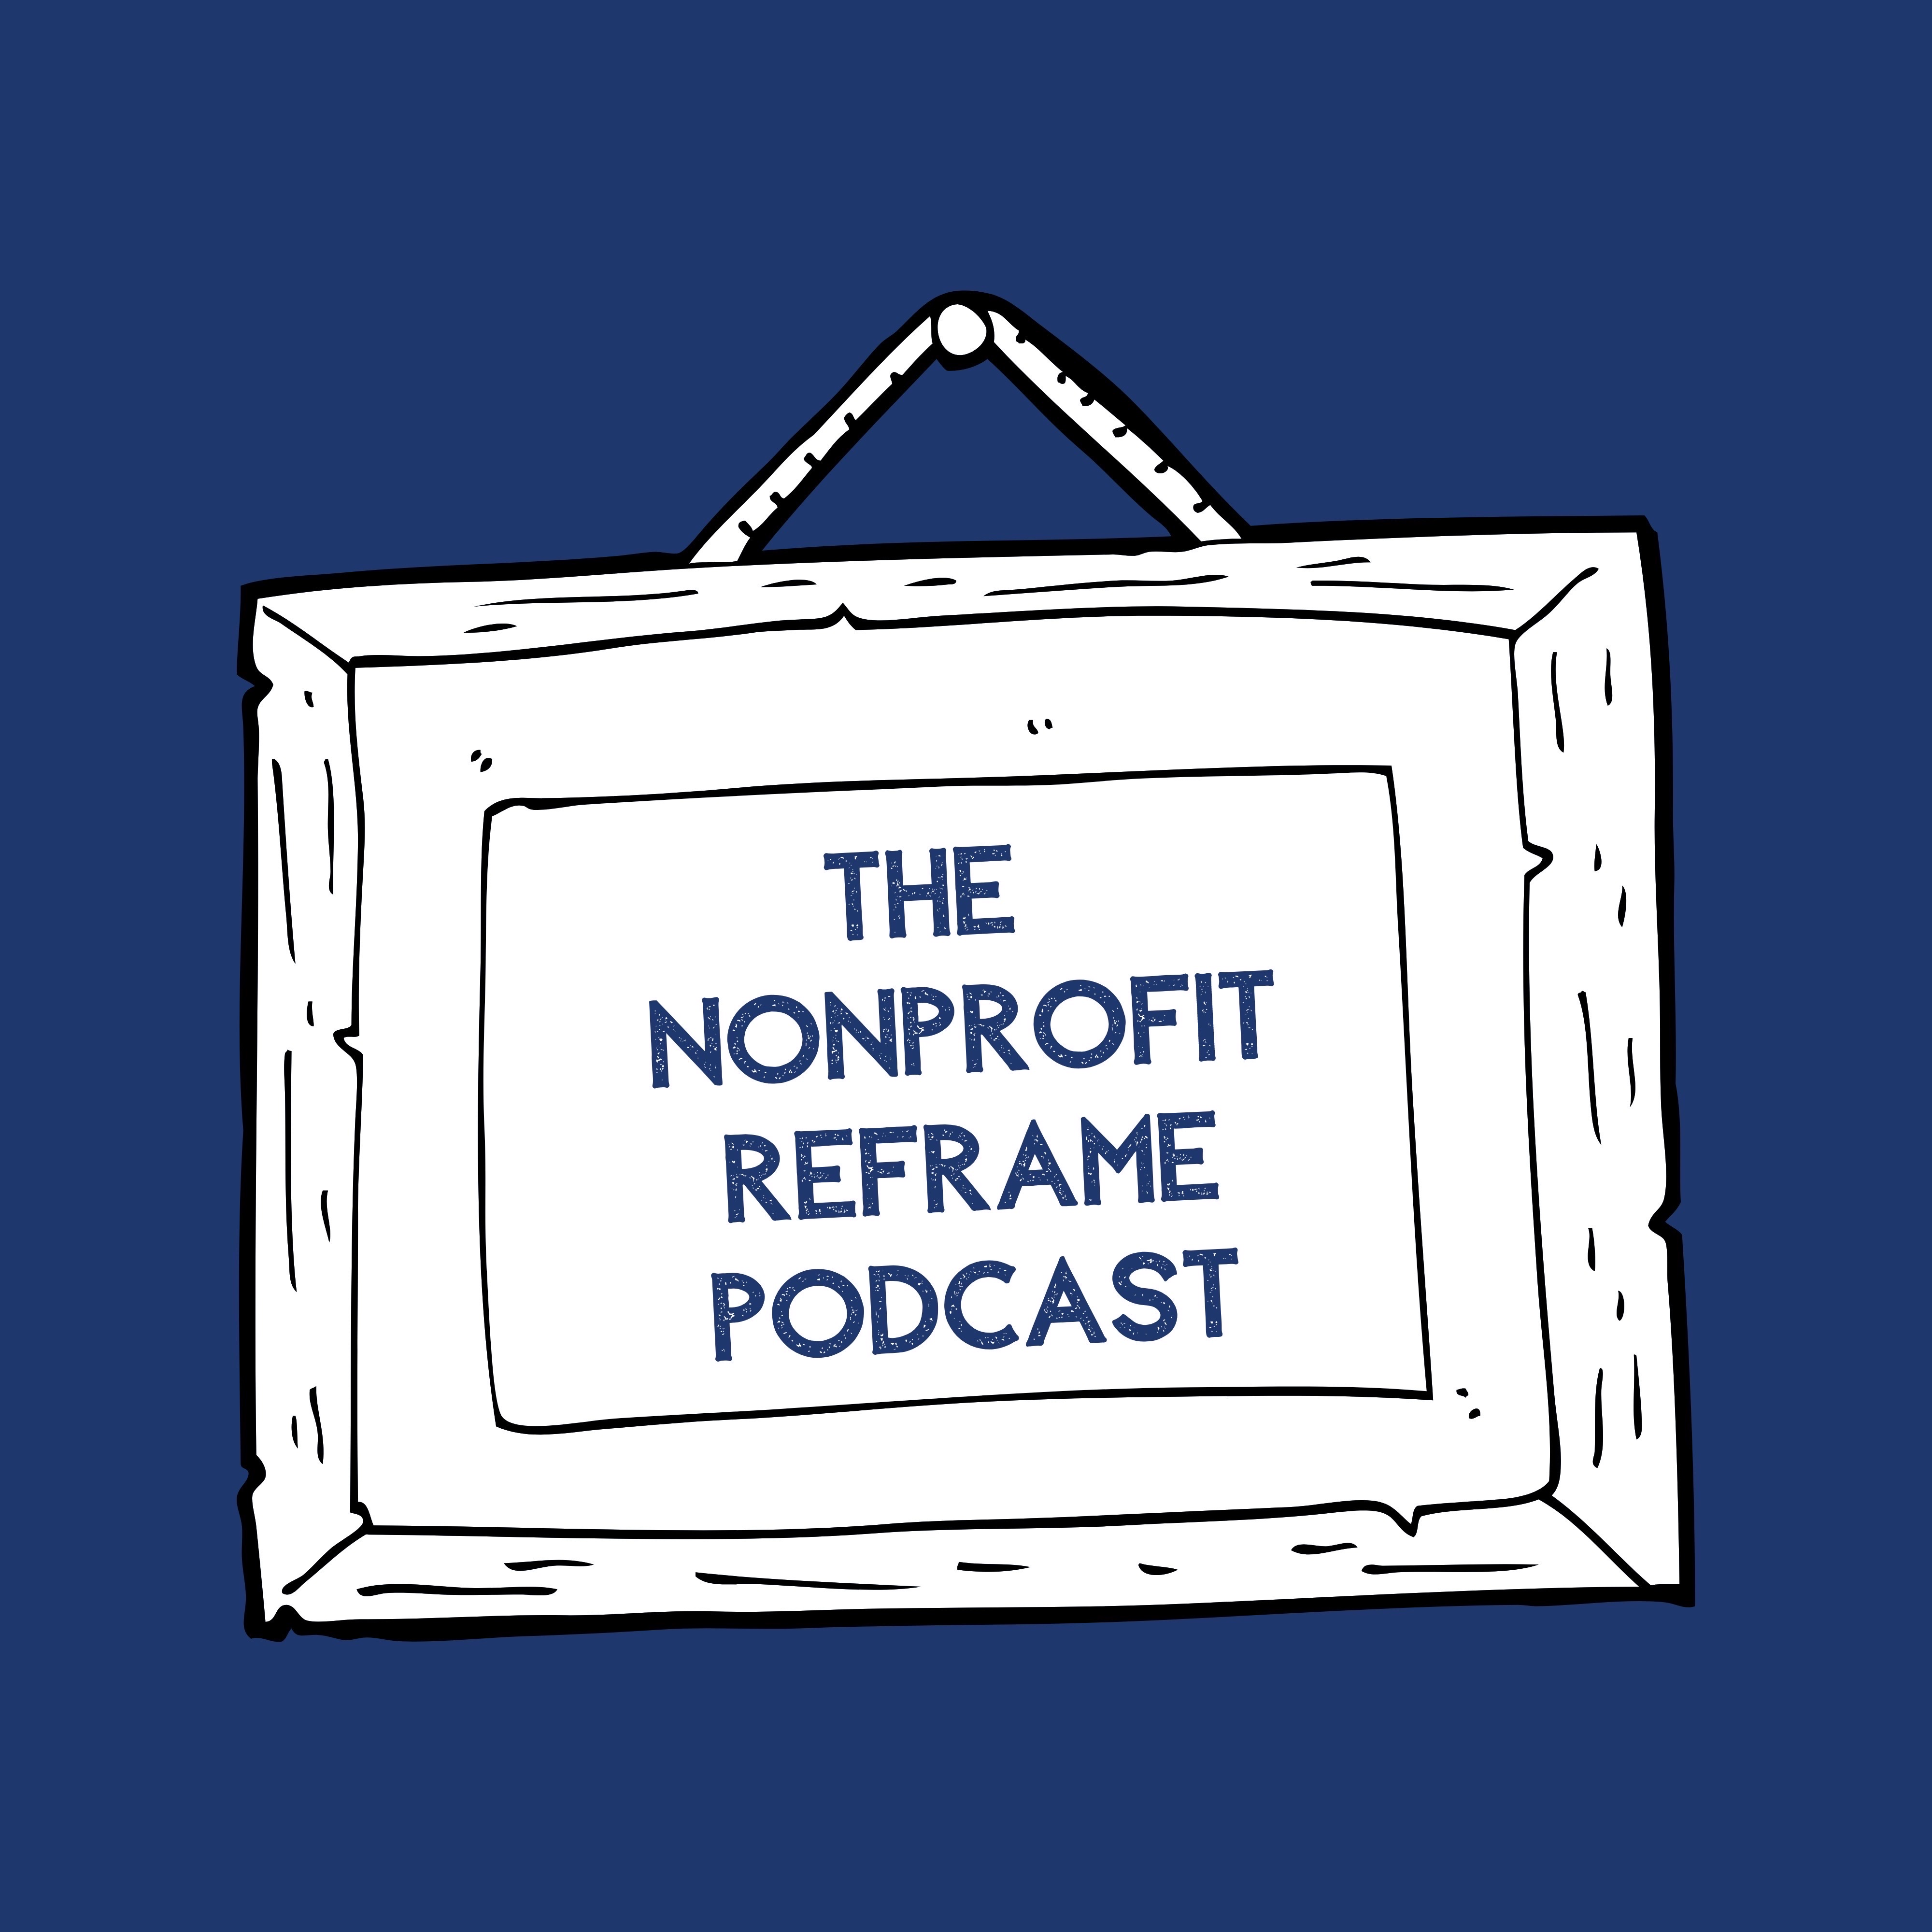 The Nonprofit Reframe Podcast